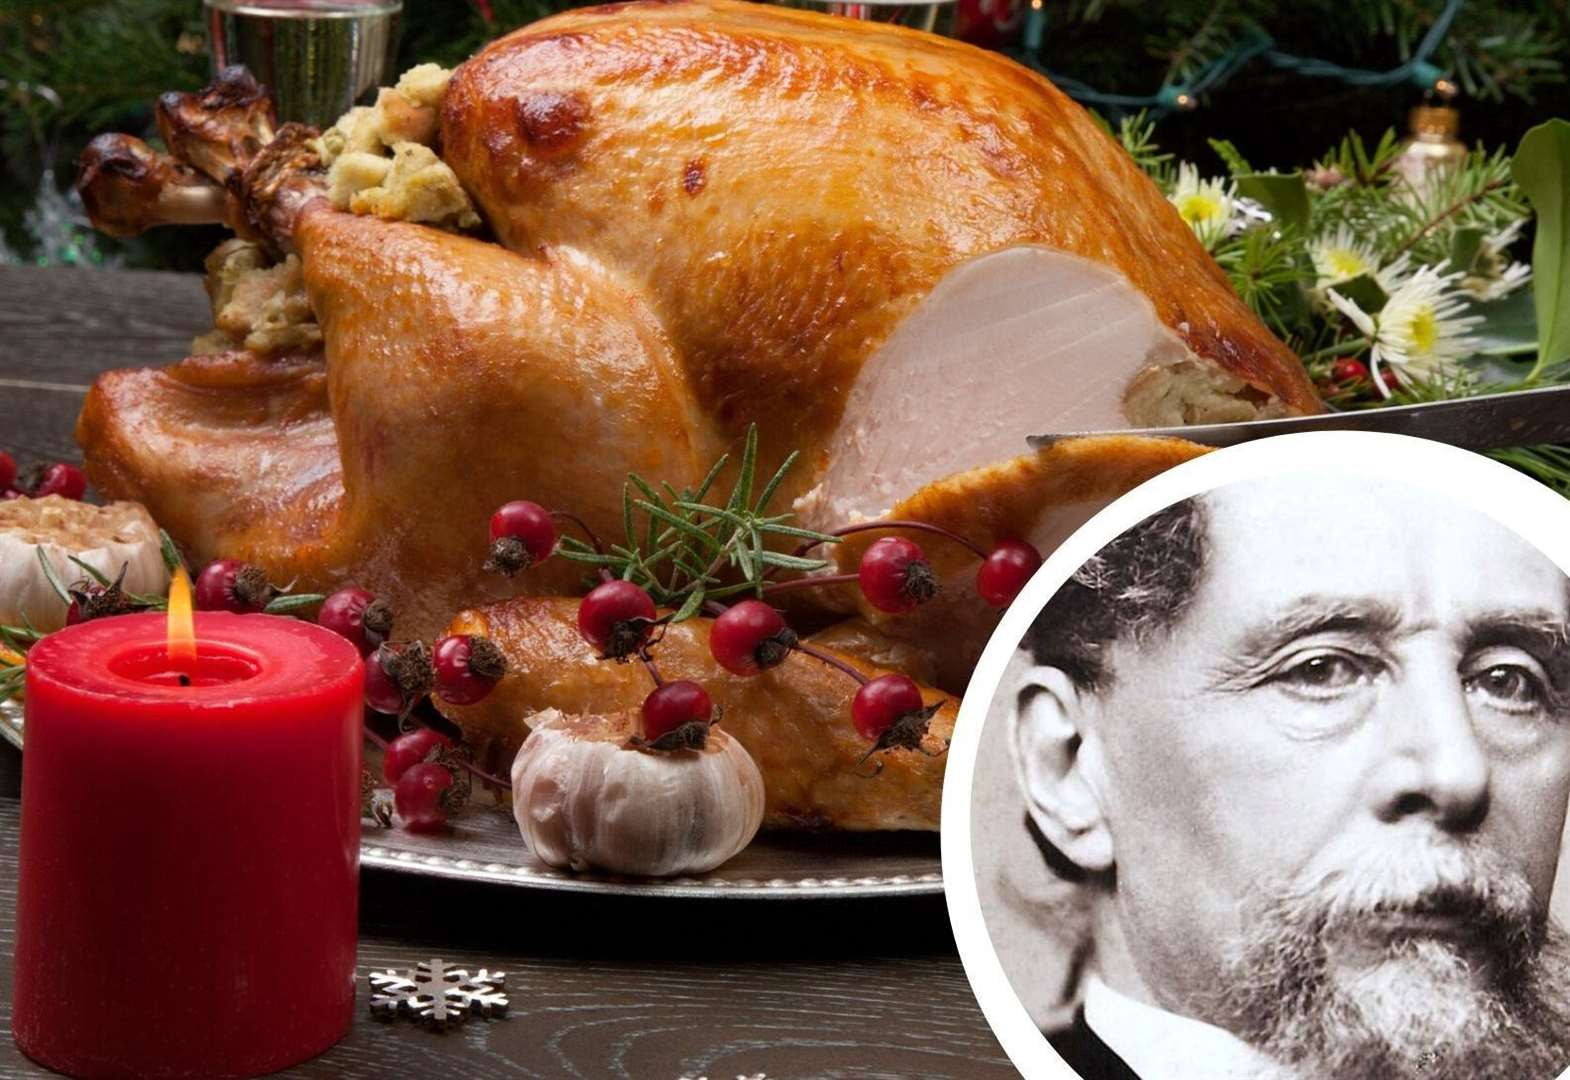 Did Dickens spend his last Christmas turkey-less?